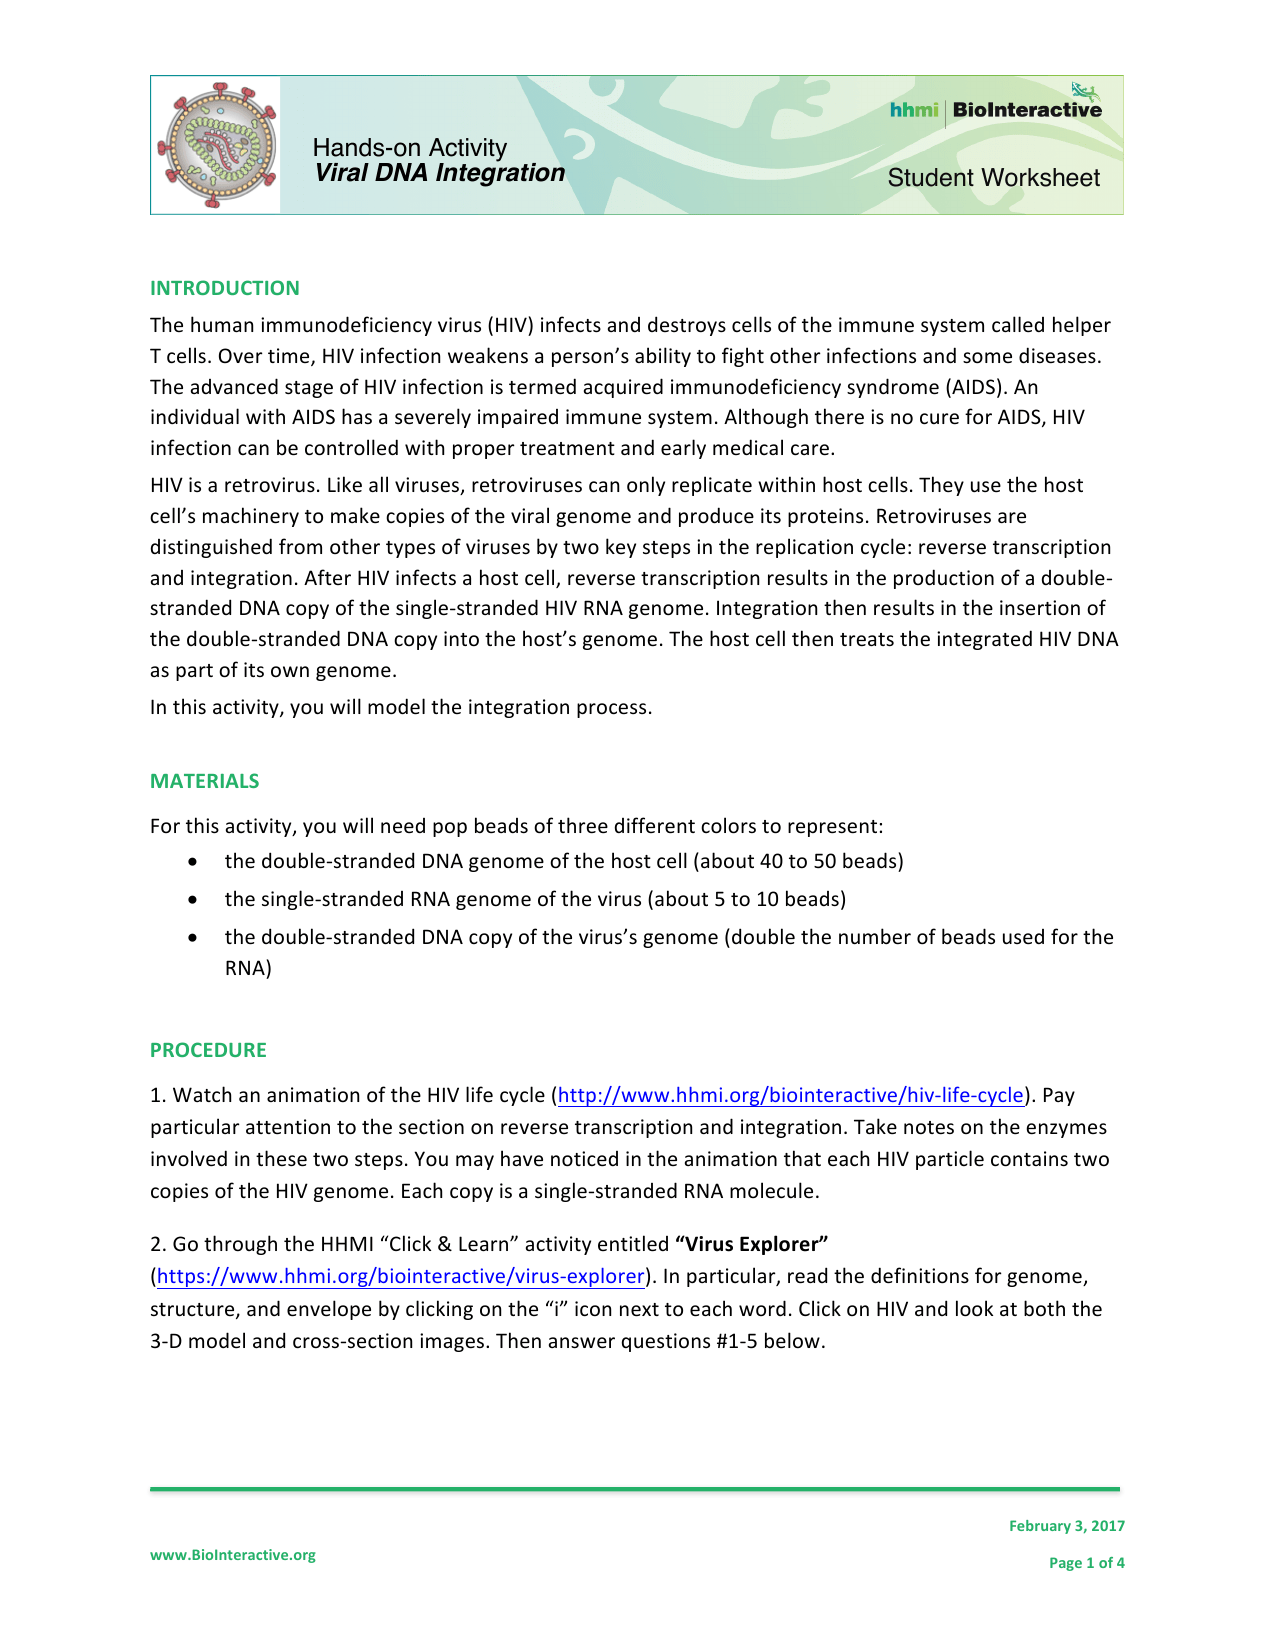 Biointeractive Student Worksheet Answers